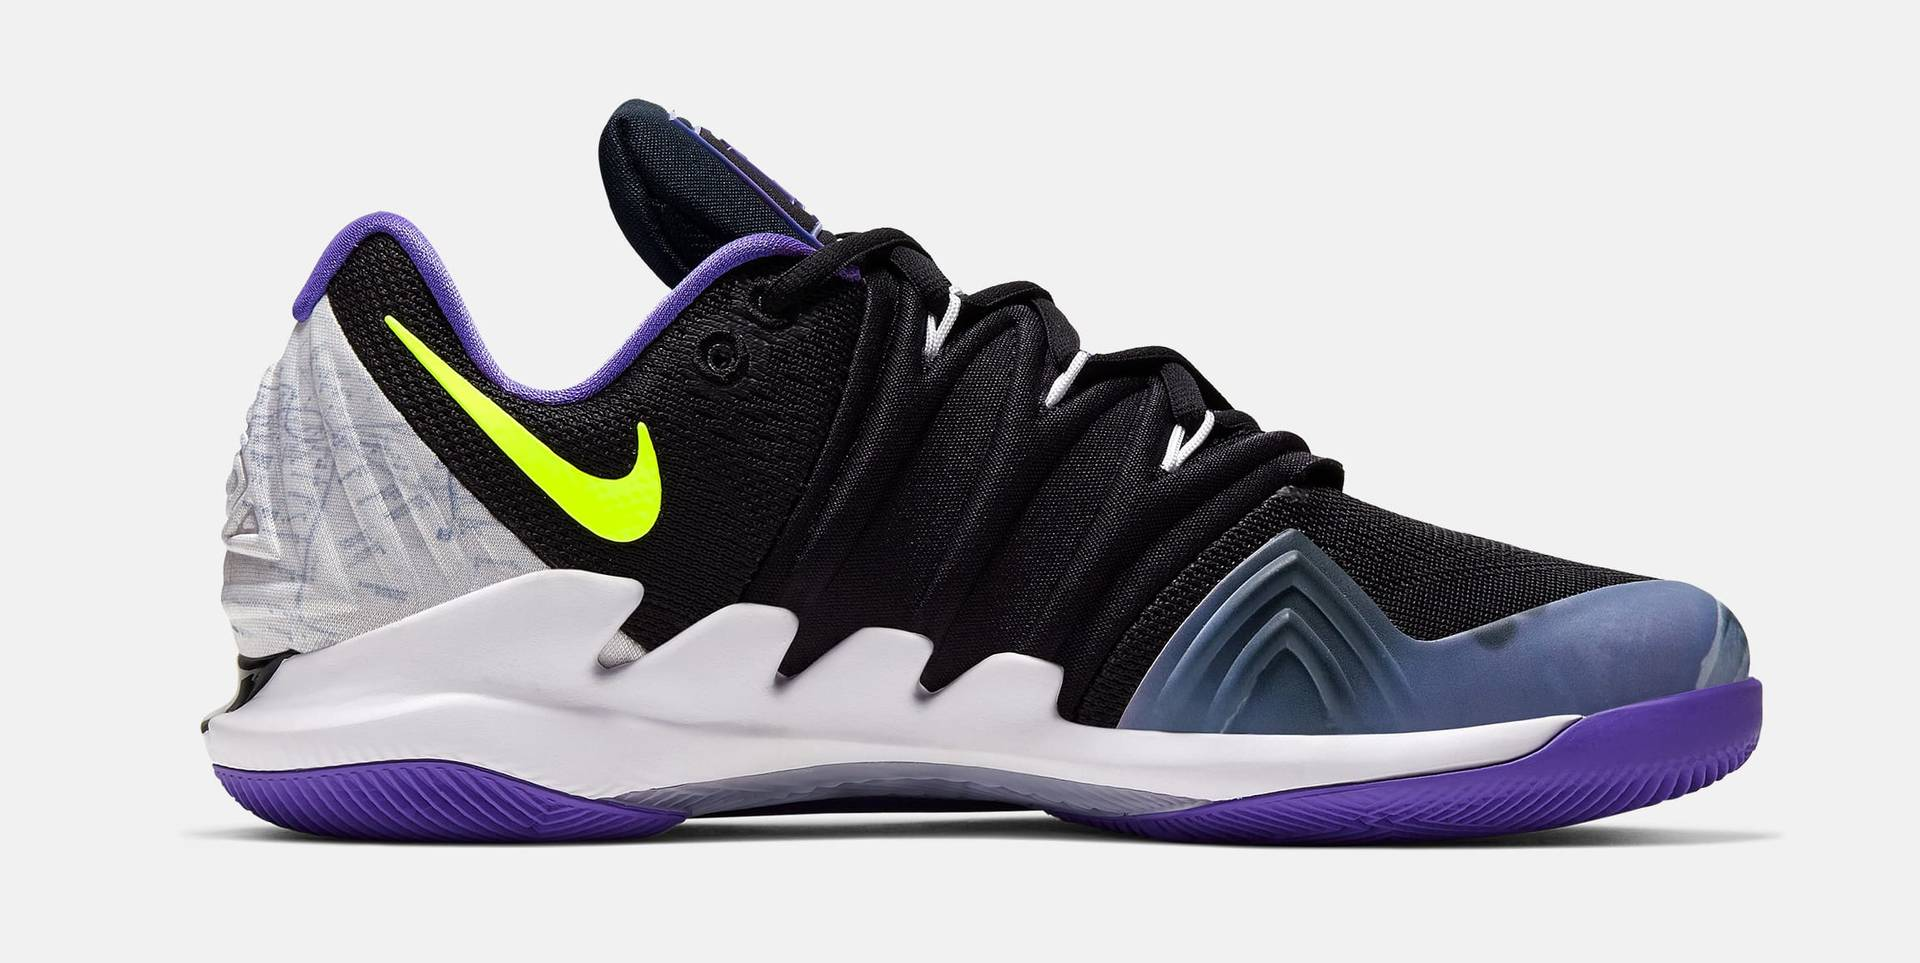 Nike Kyrie 5 Tennis Hybrid Sneaker Releasing For U.S. Open: First Look